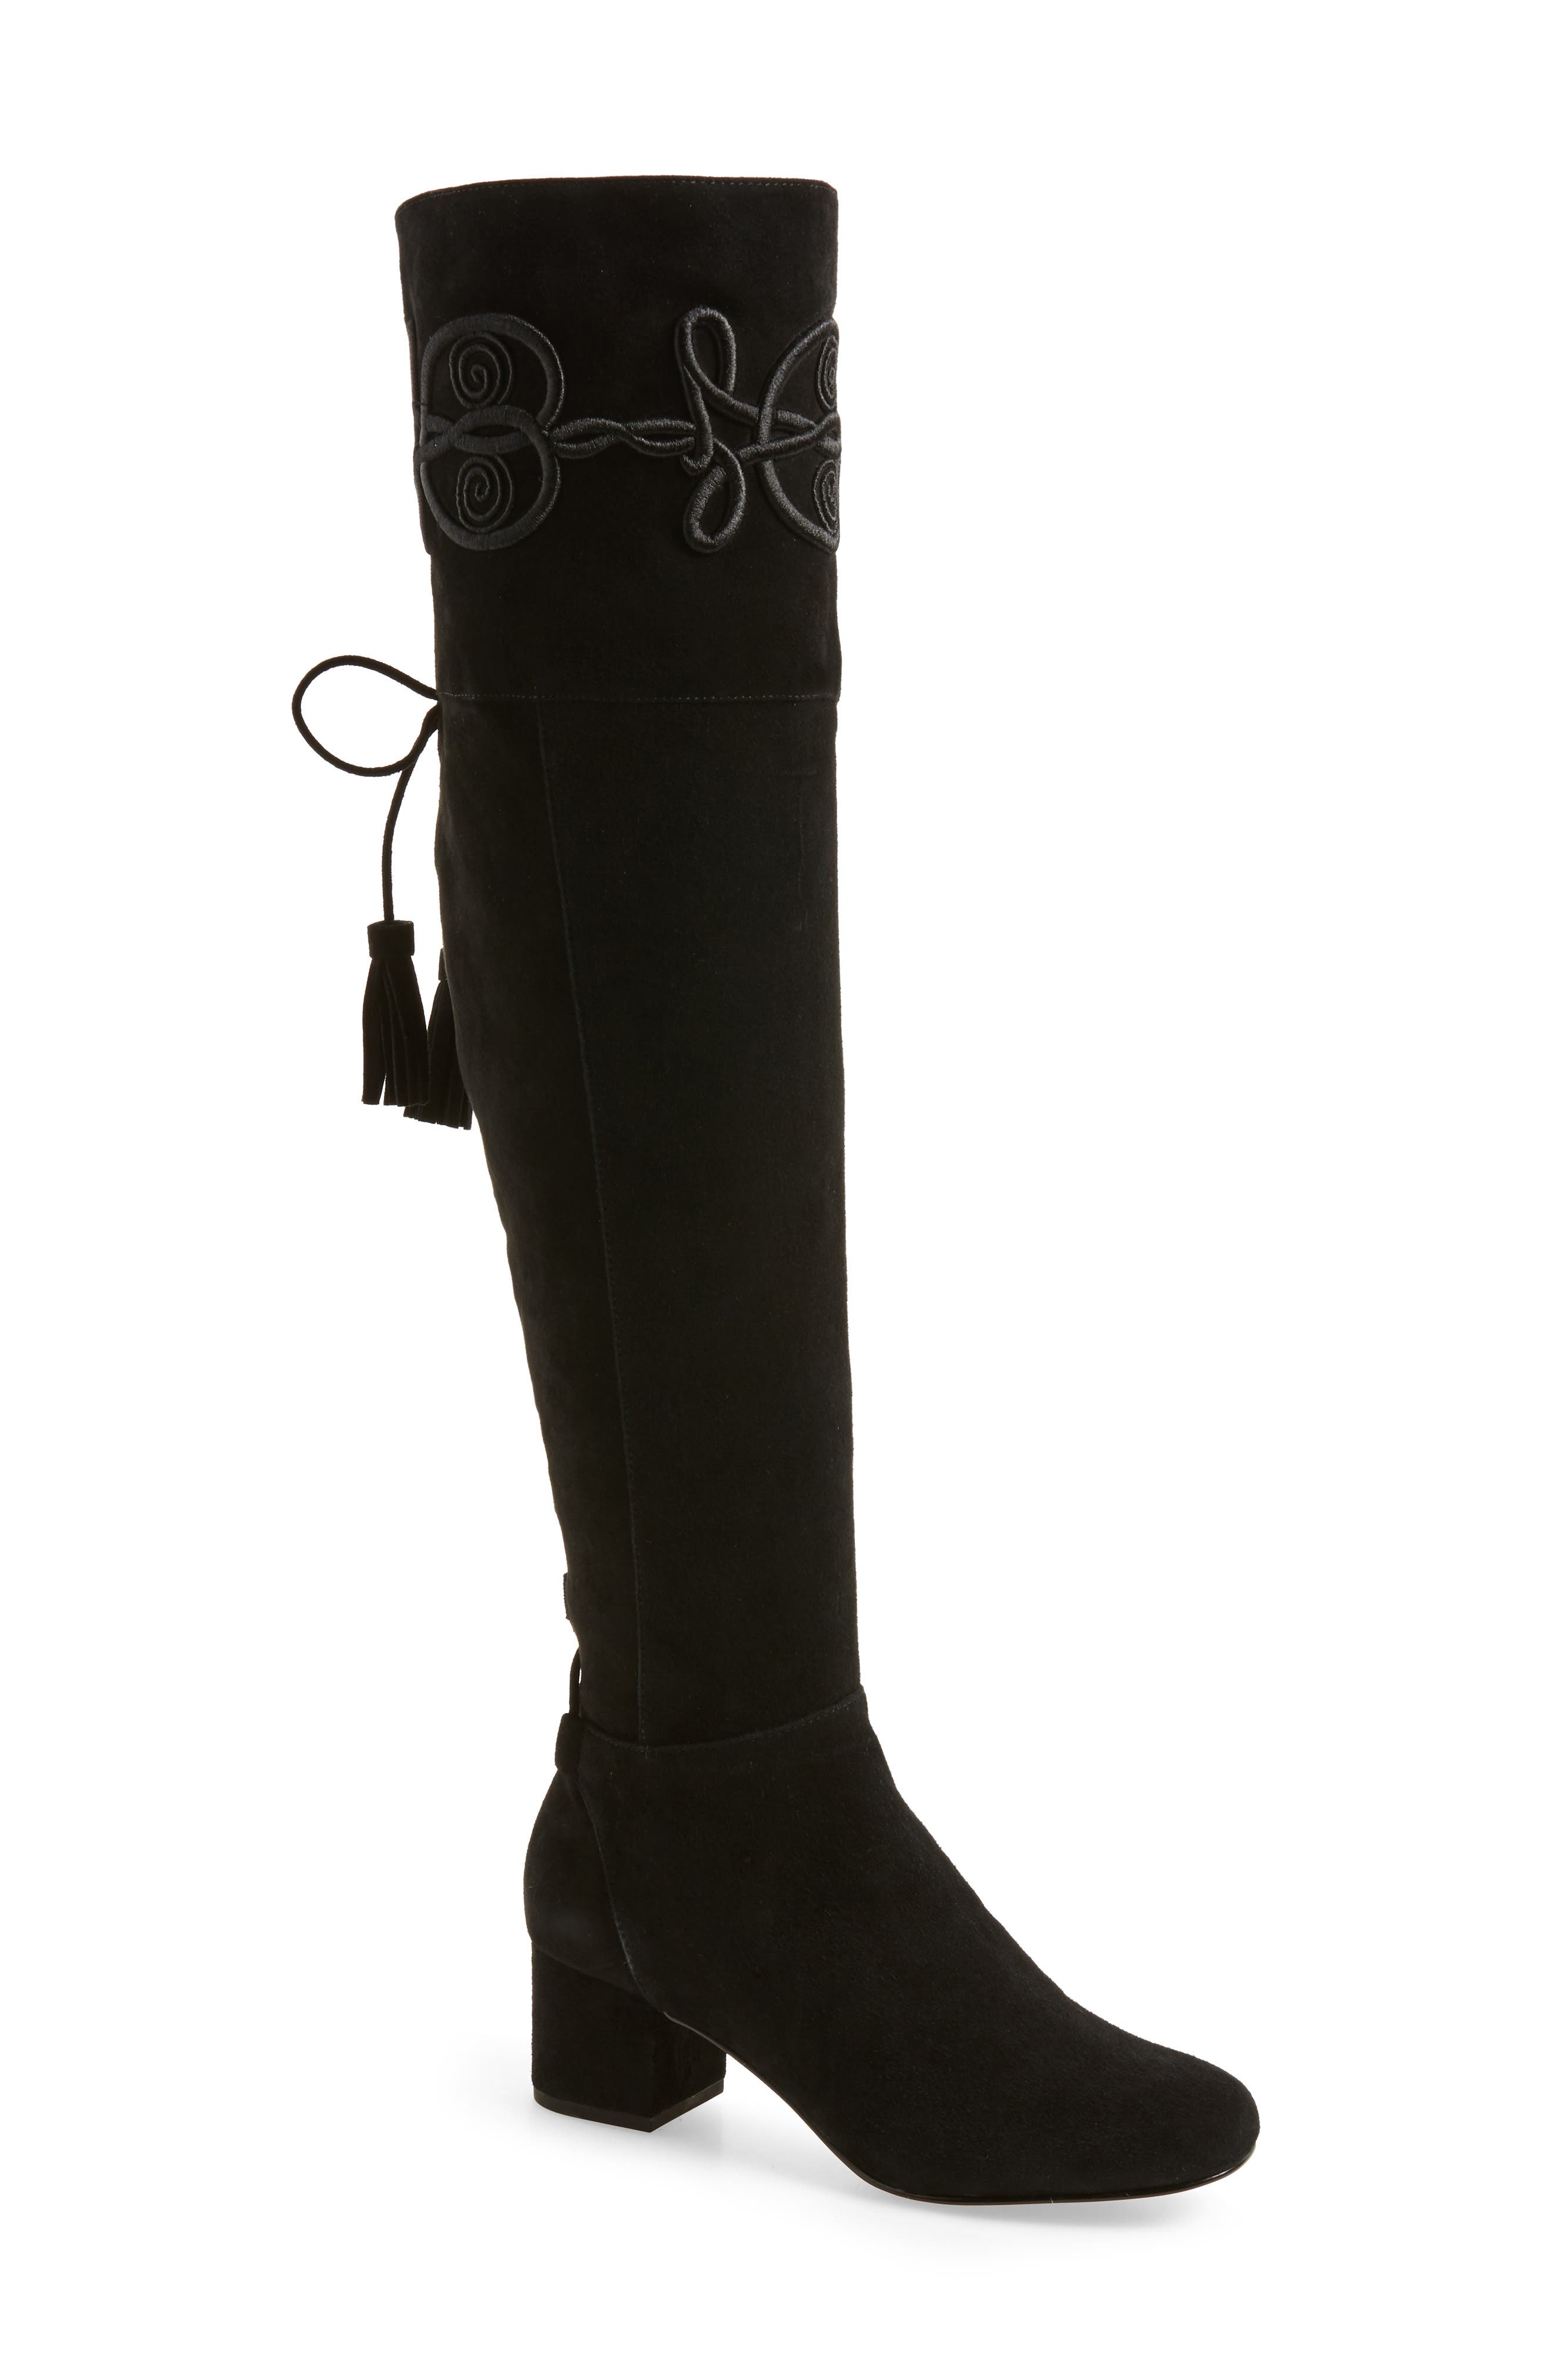 Shiloh Over the Knee Boot,                         Main,                         color, 004